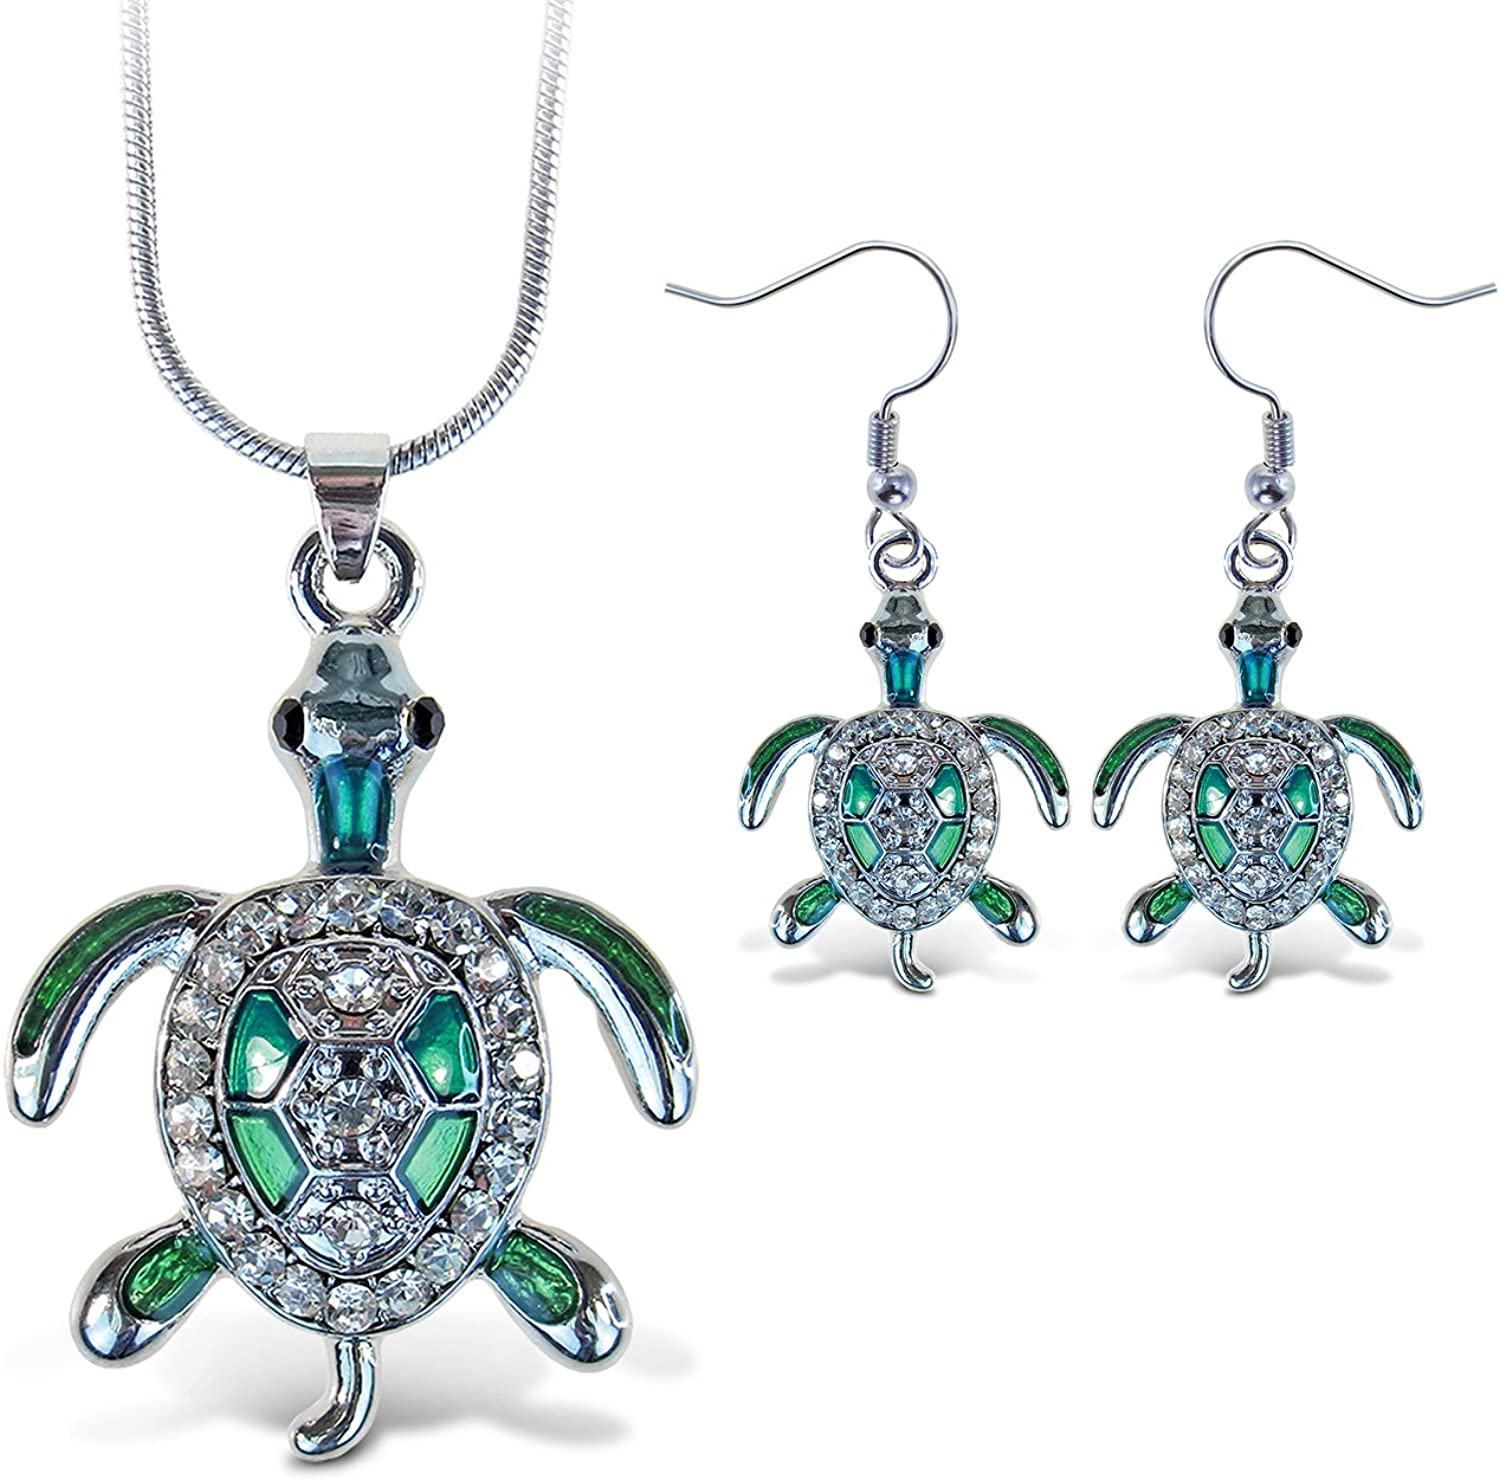 Puzzled Sparkling Sea Turtle Necklace and Earrings Set Charming Necklace and Earring Set - Ocean Sea Life Theme - Aqua Jewelry Always Unique Gift - Item #K6309-6359